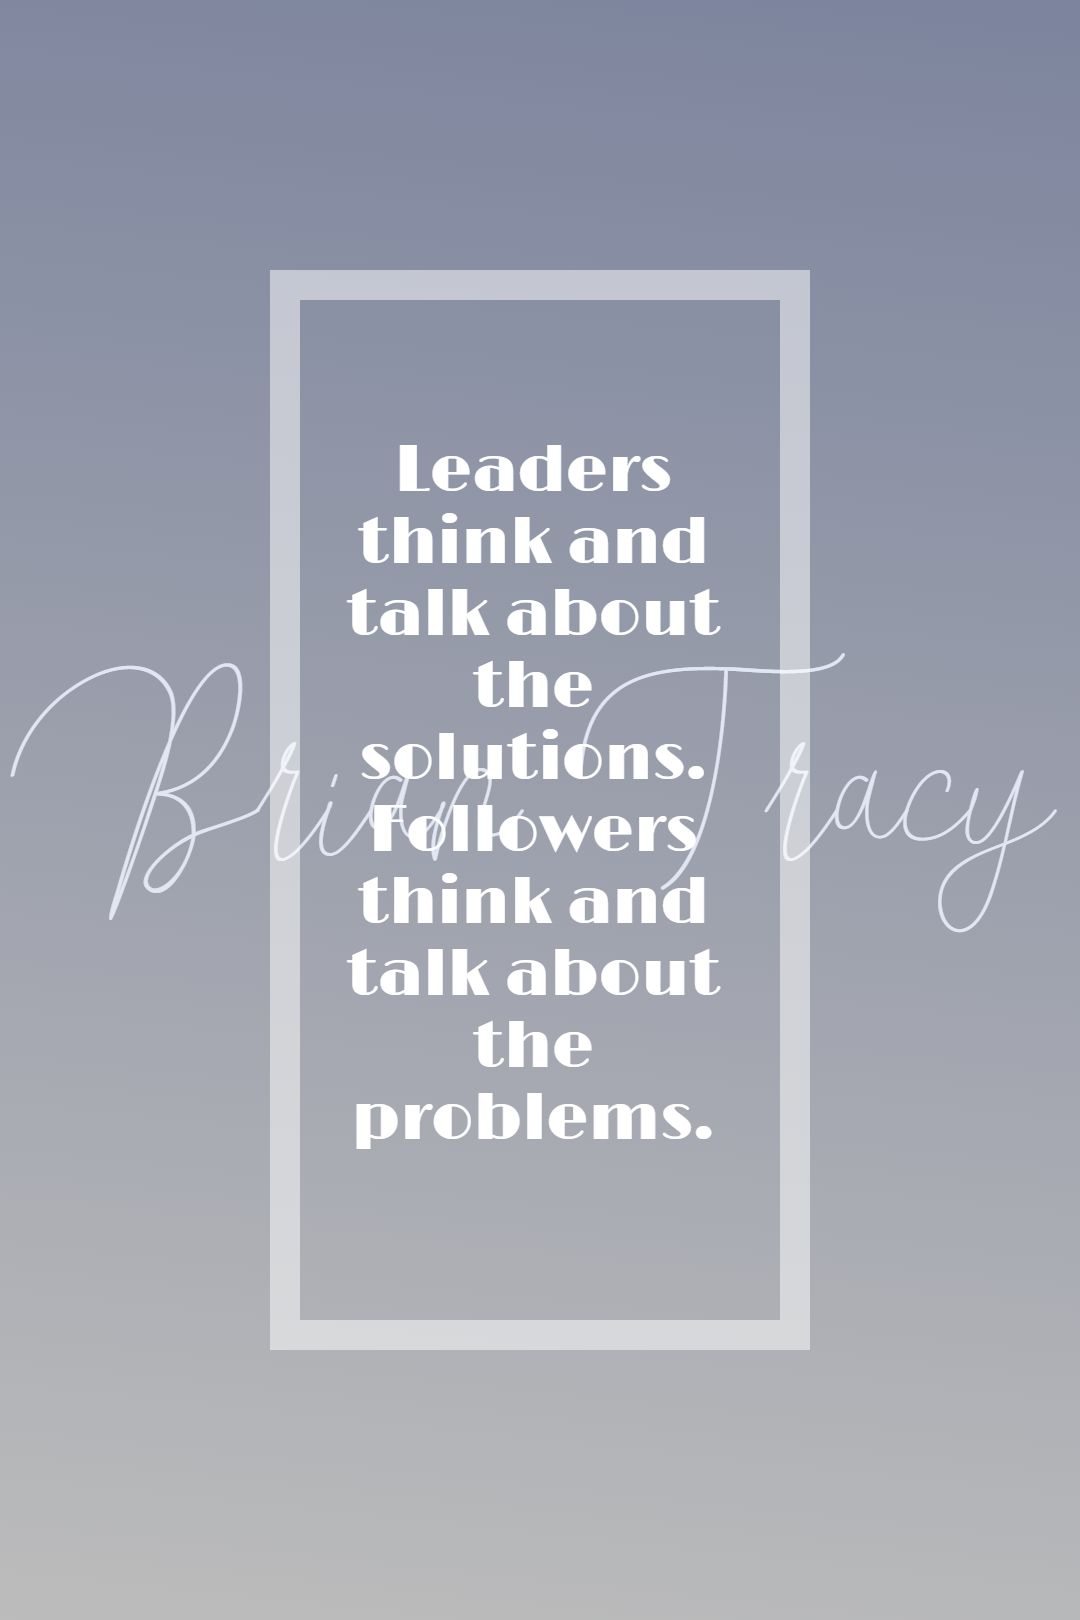 Quotes image of Leaders think and talk about the solutions. Followers think and talk about the problems.